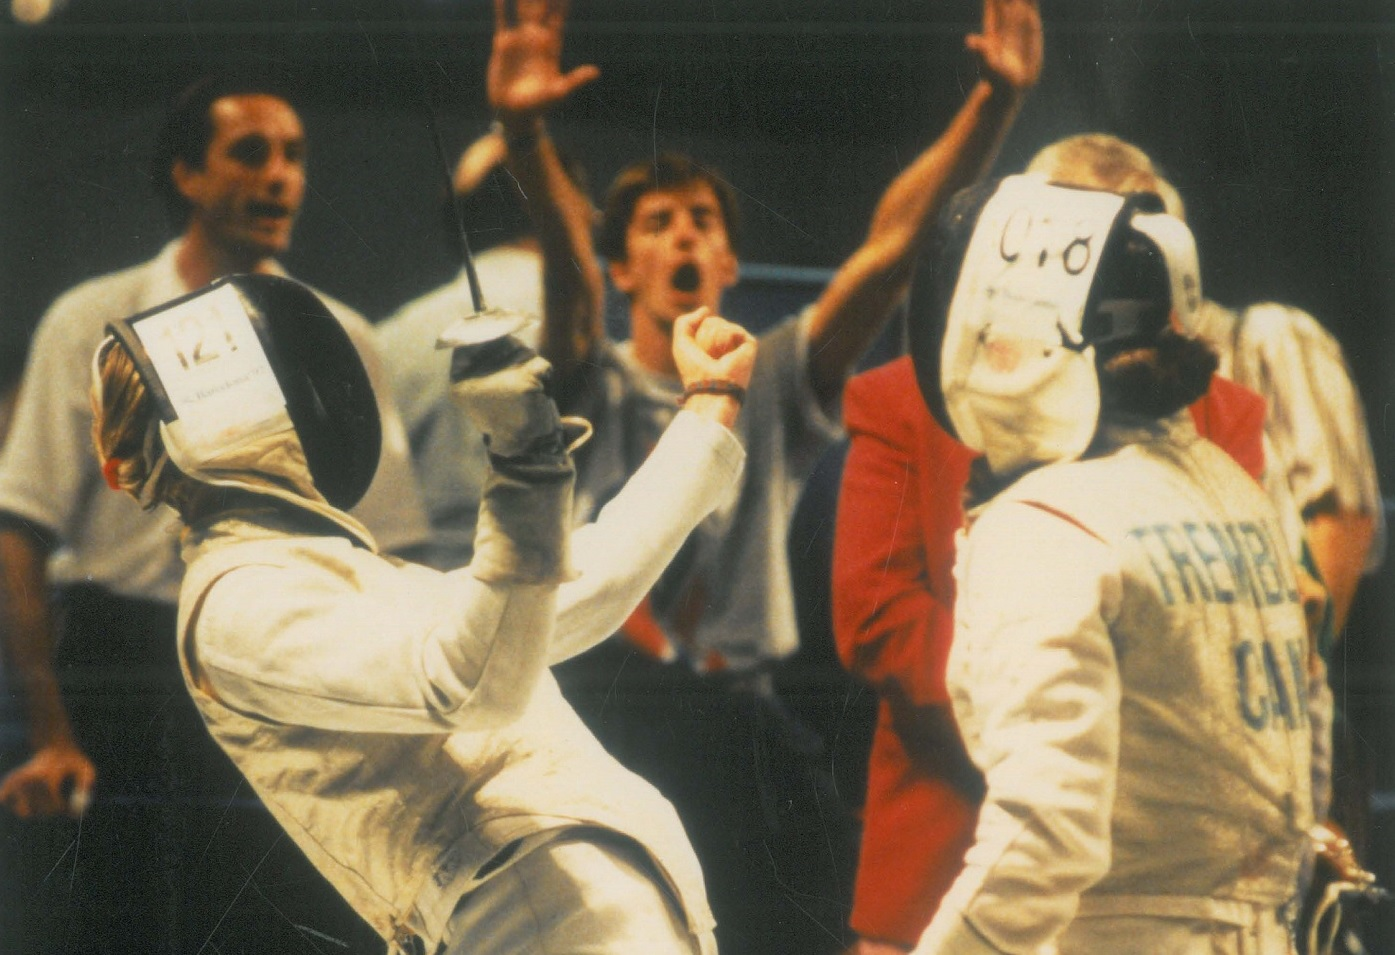 Fiona McIntosh fencing at the Barcelona 1992 Olympics